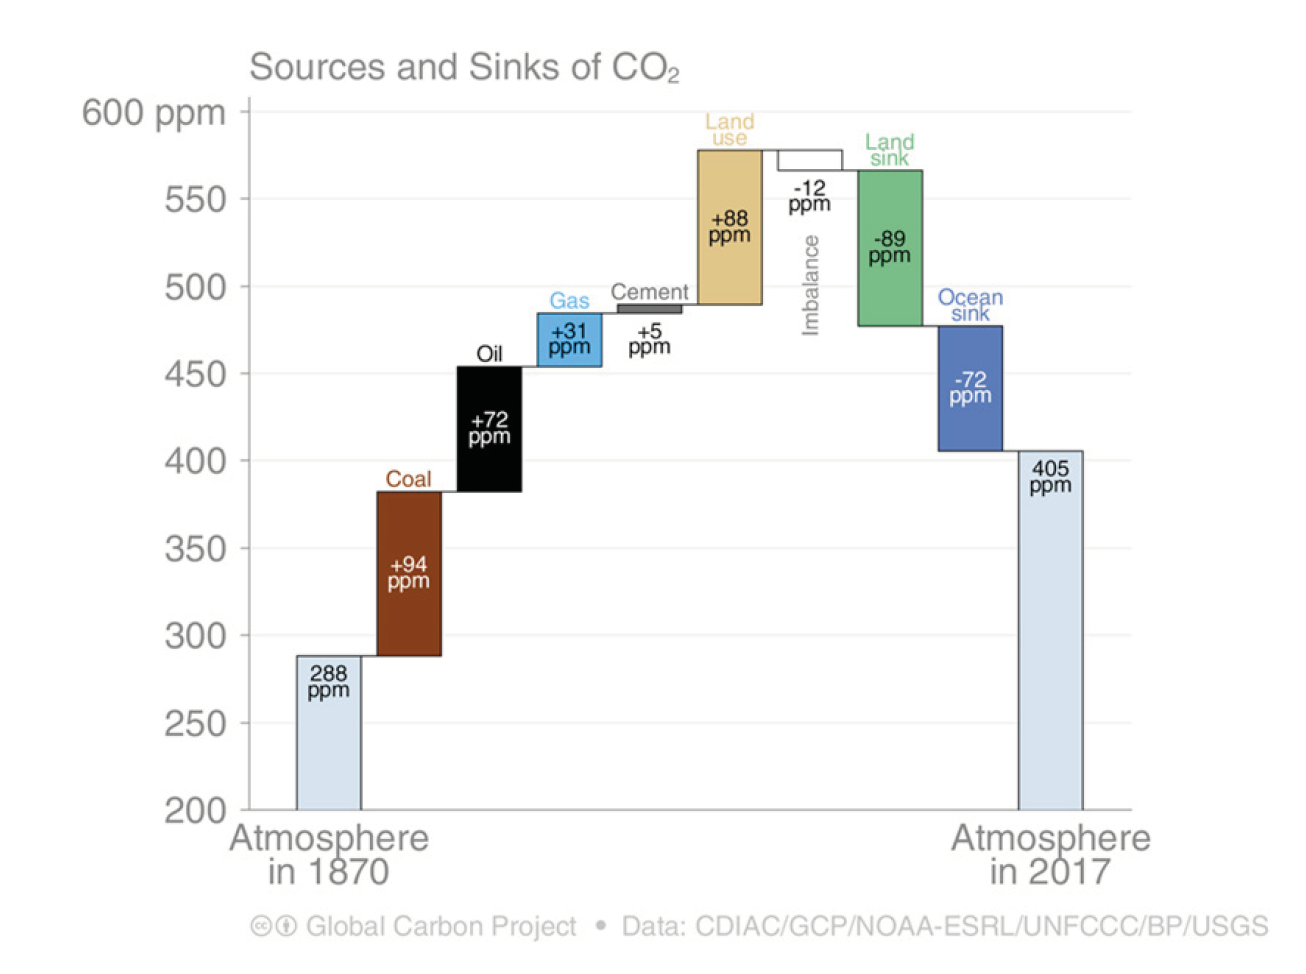 Sources and sinks of CO2